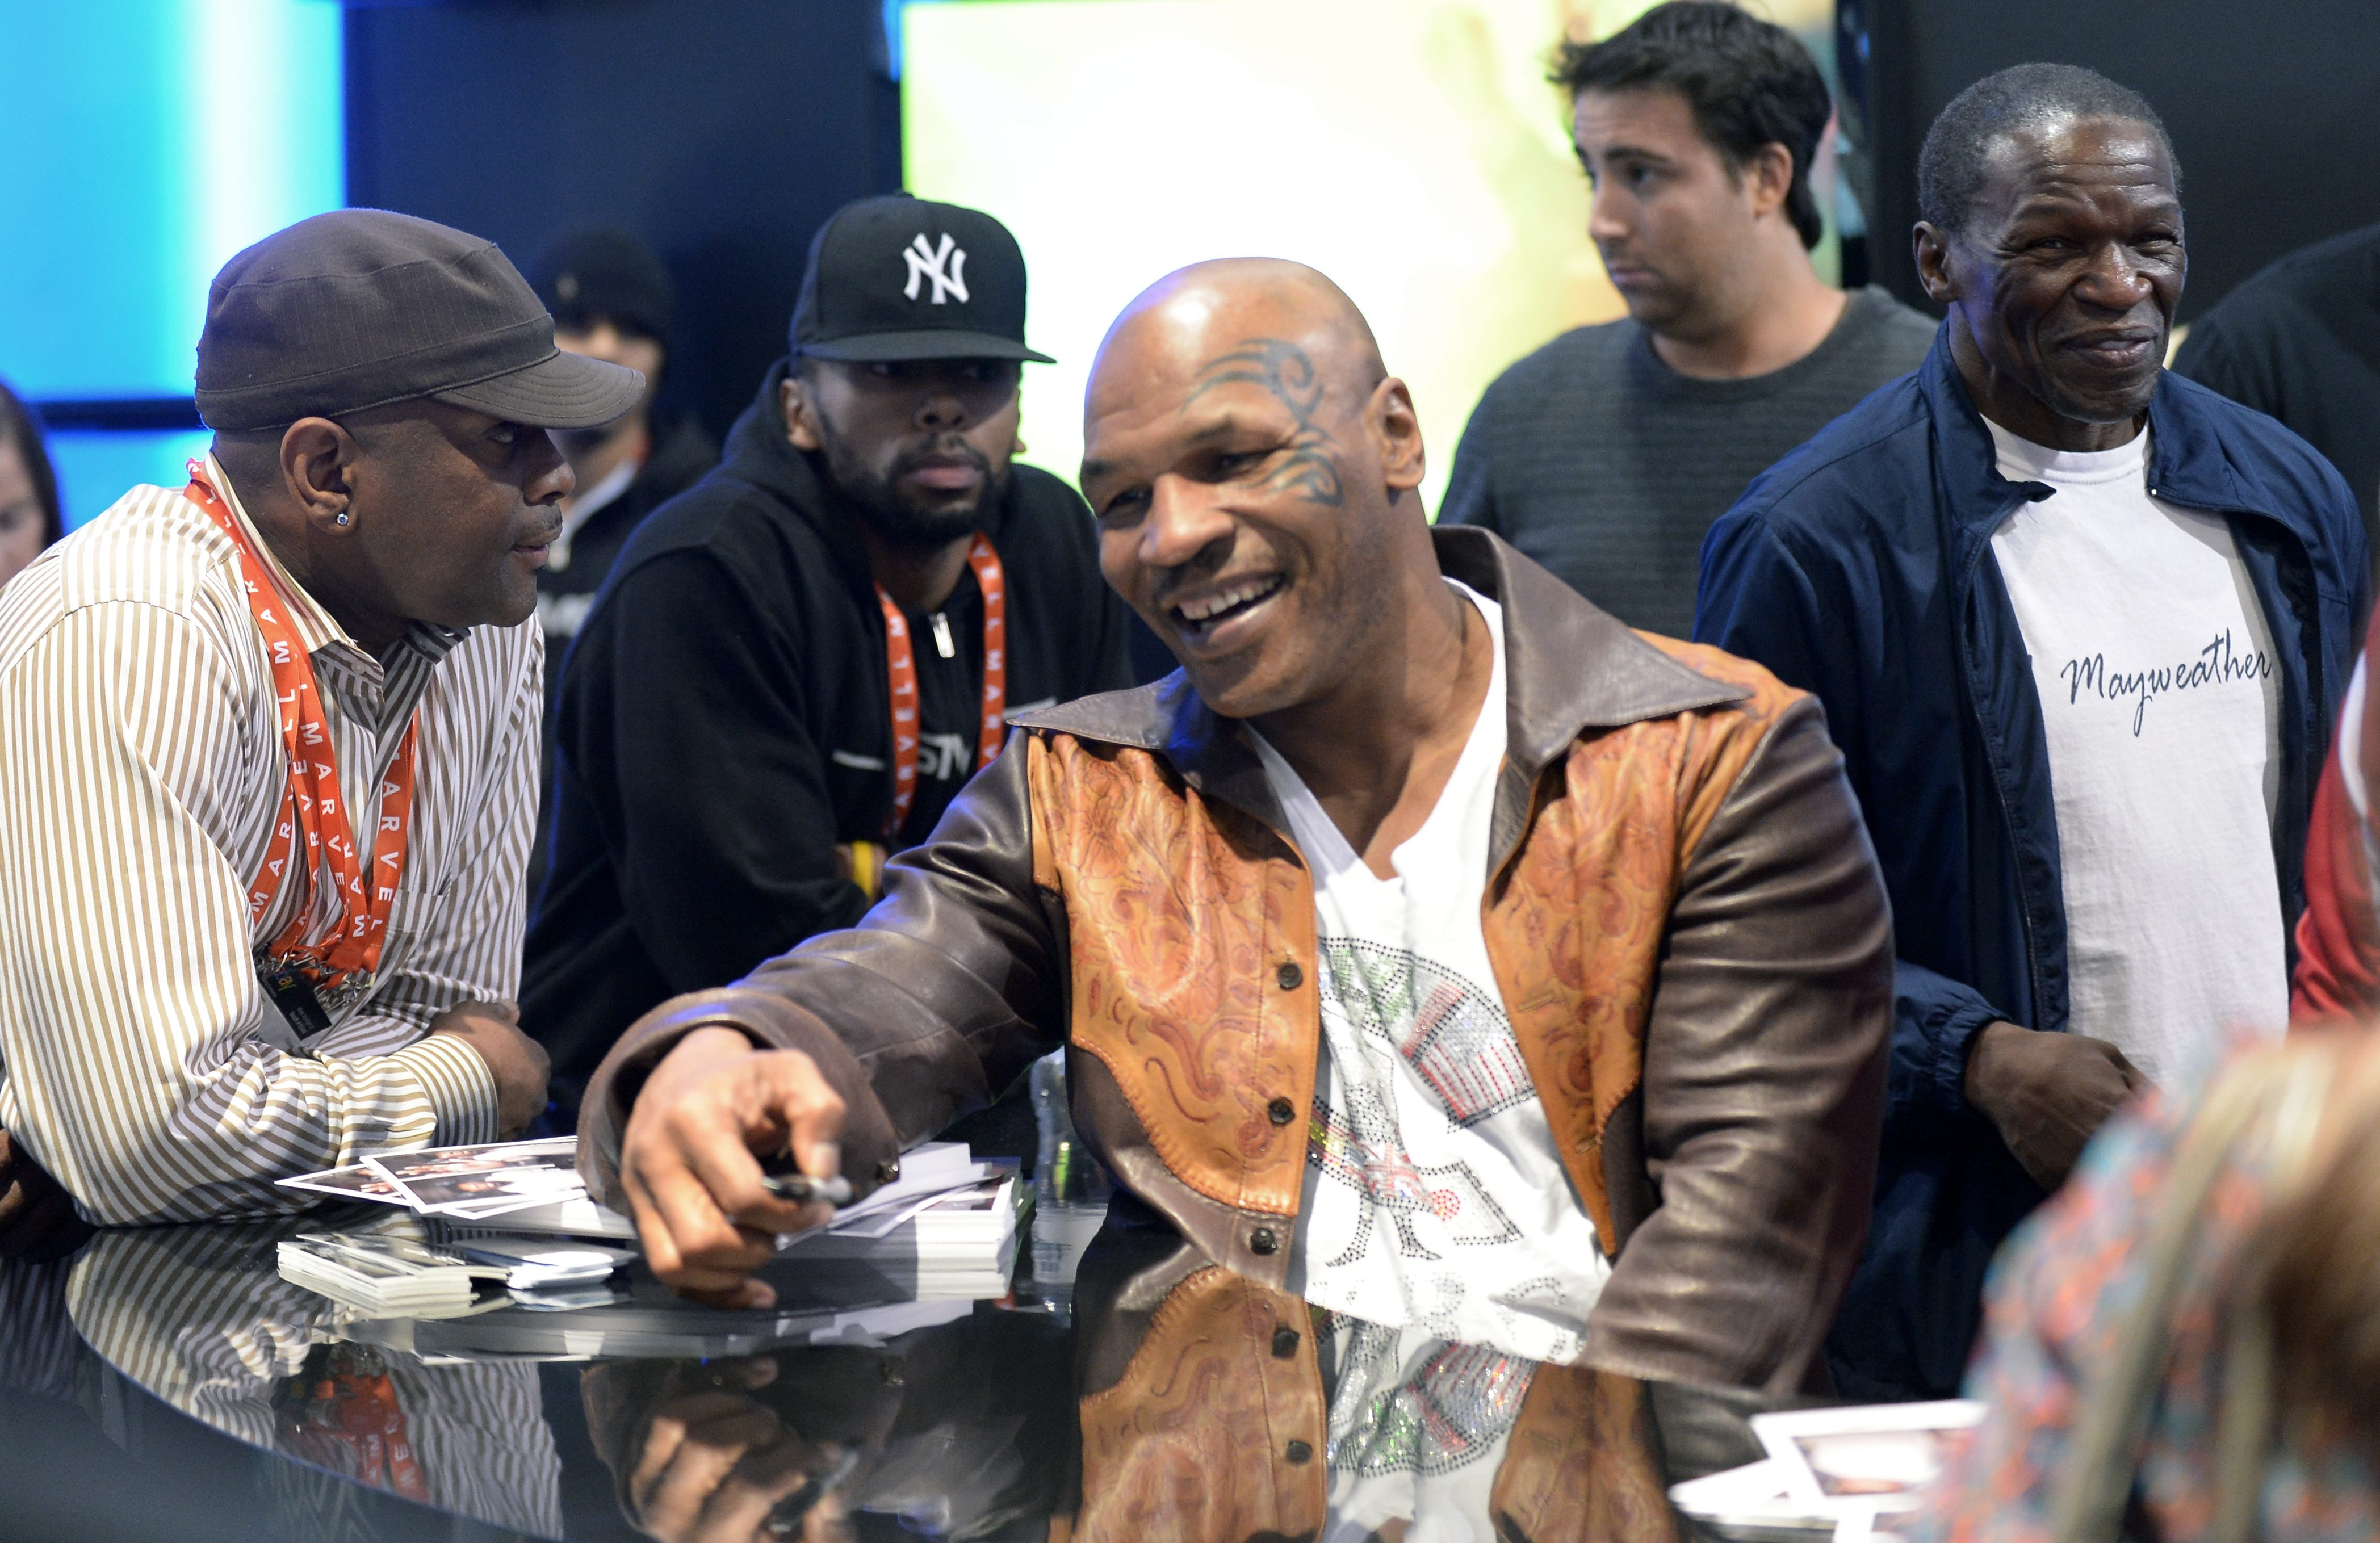 Hall of Famer and former undisputed champion Mike Tyson is making a grand return to the sport that helped make him famous.